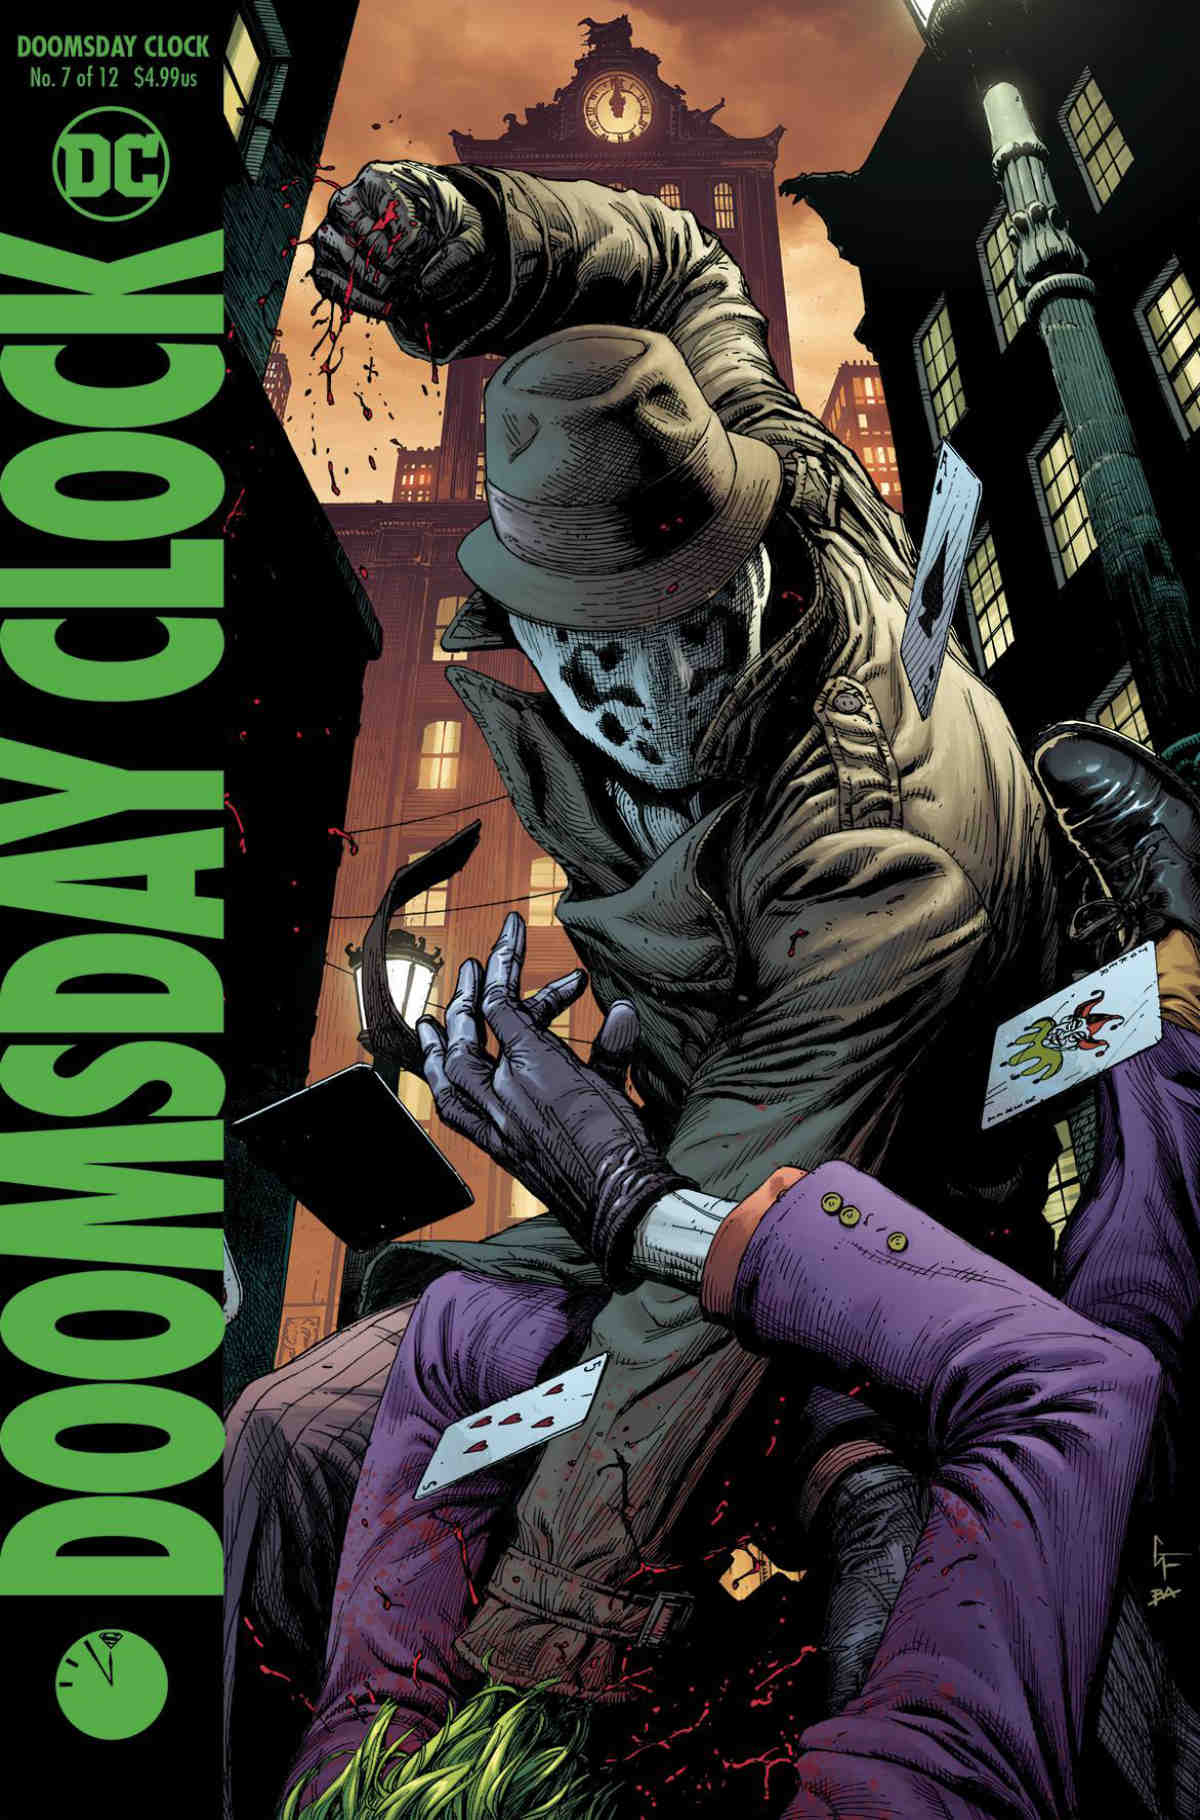 Doomsday Clock Hc Vol 02 With Slipcase Atomik Pop